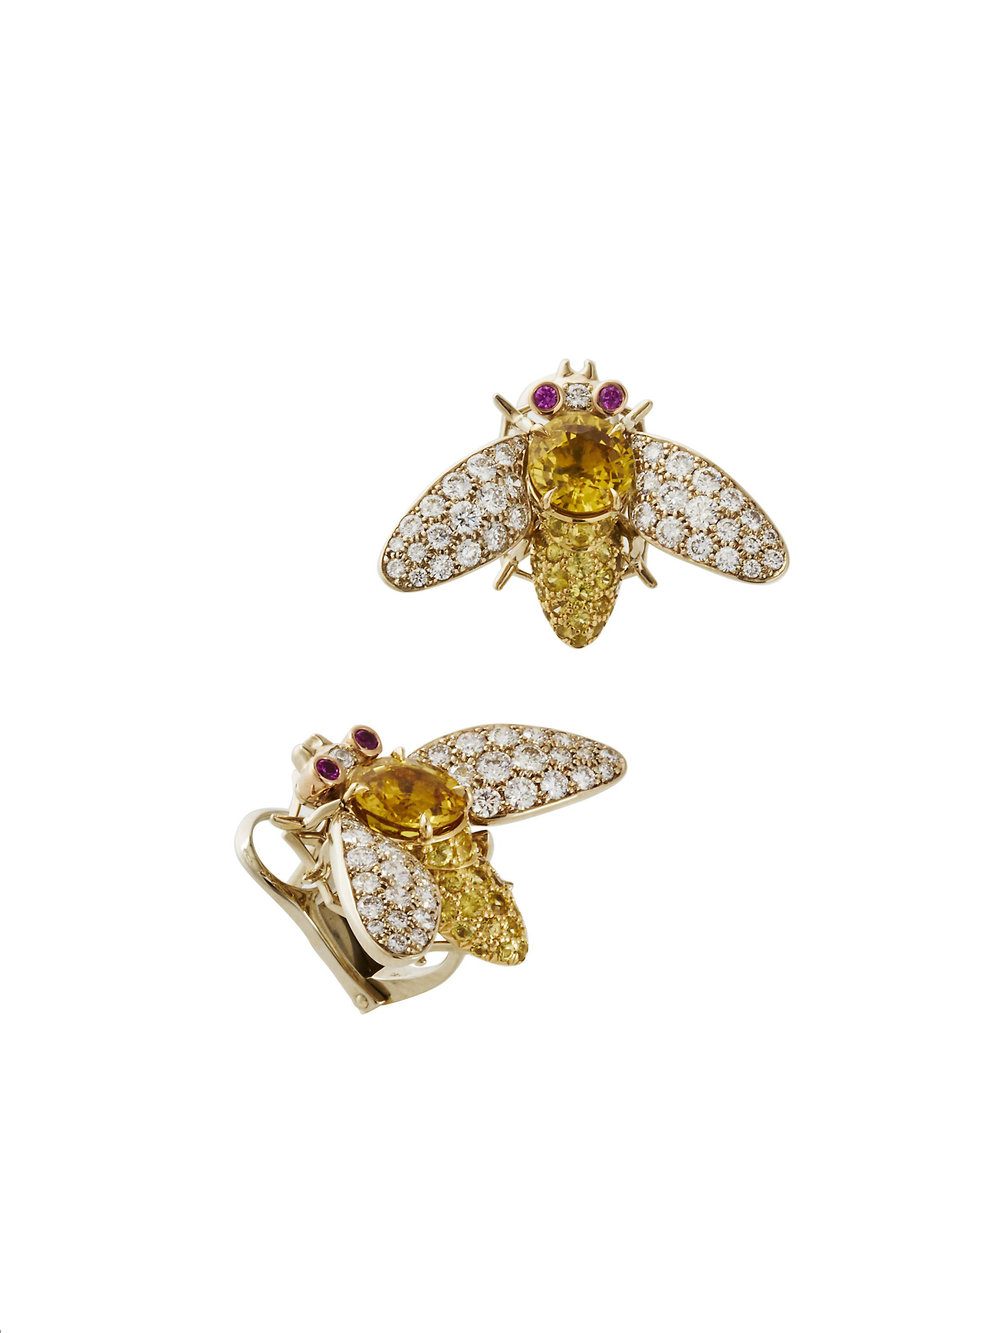 YELLOW BEES EARRINGS   2.22 CT OF DIAMONDS 1.8 CT Small Yellow Sapphires 4.55 CT Center Stone Yellow Sapphire (6.35 CT Sapphire Total)